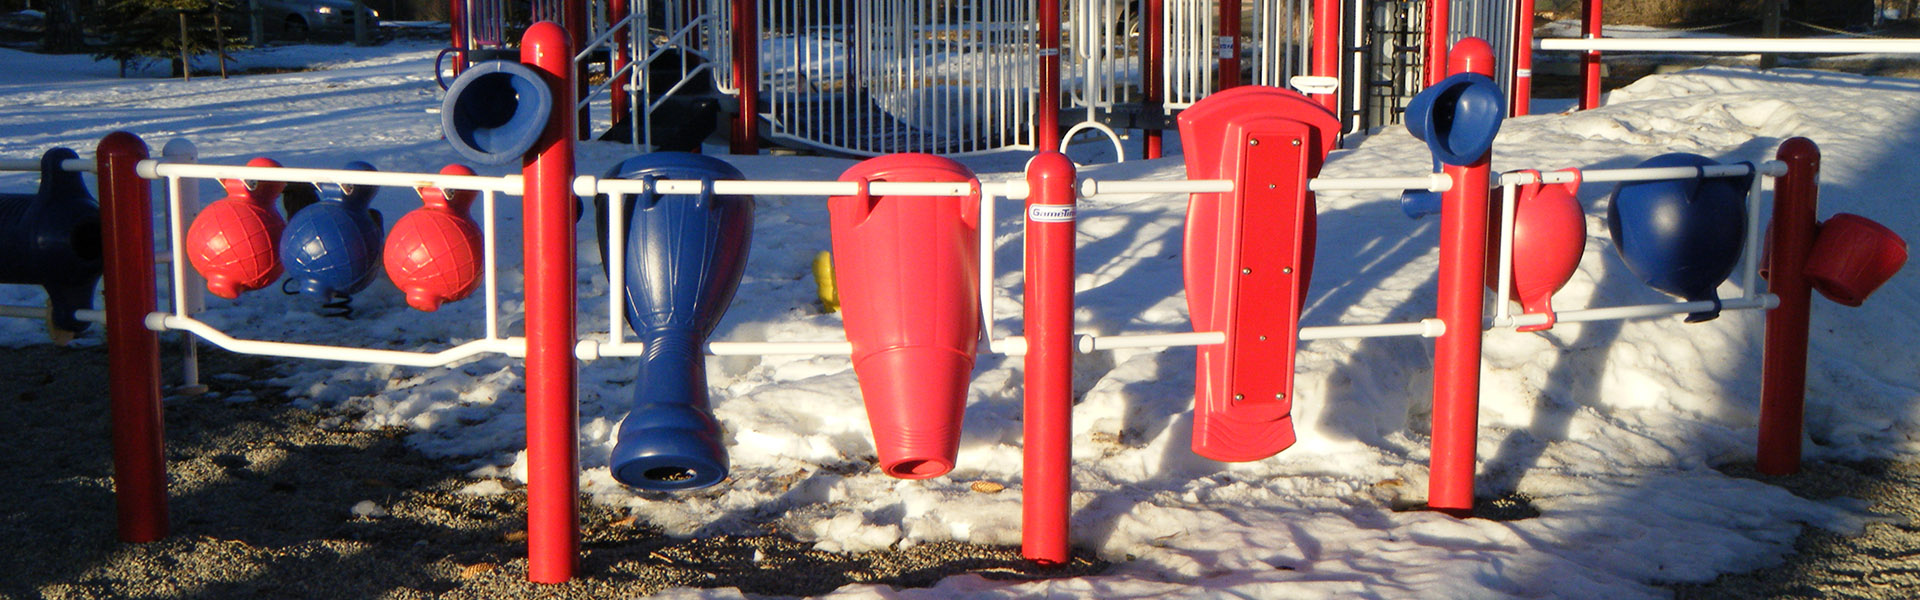 Lethbridge_playgrounds_banner